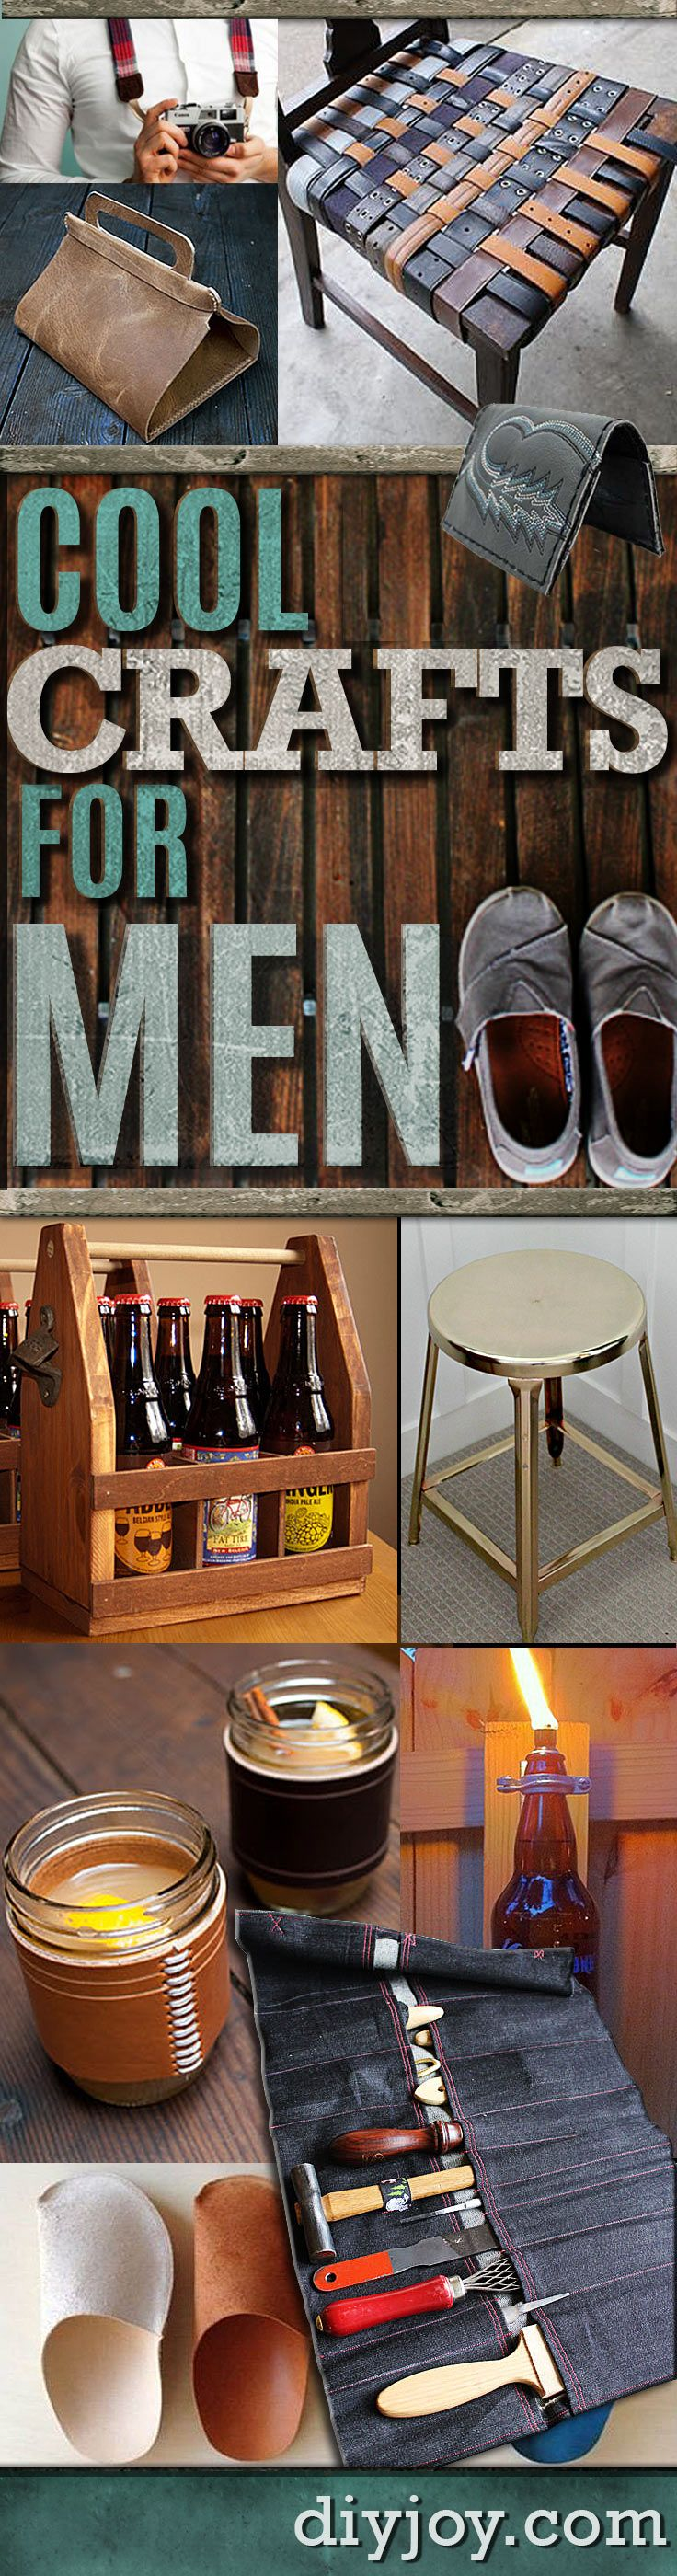 Cheap Man Cave Gifts : Best images about diy gift ideas on pinterest